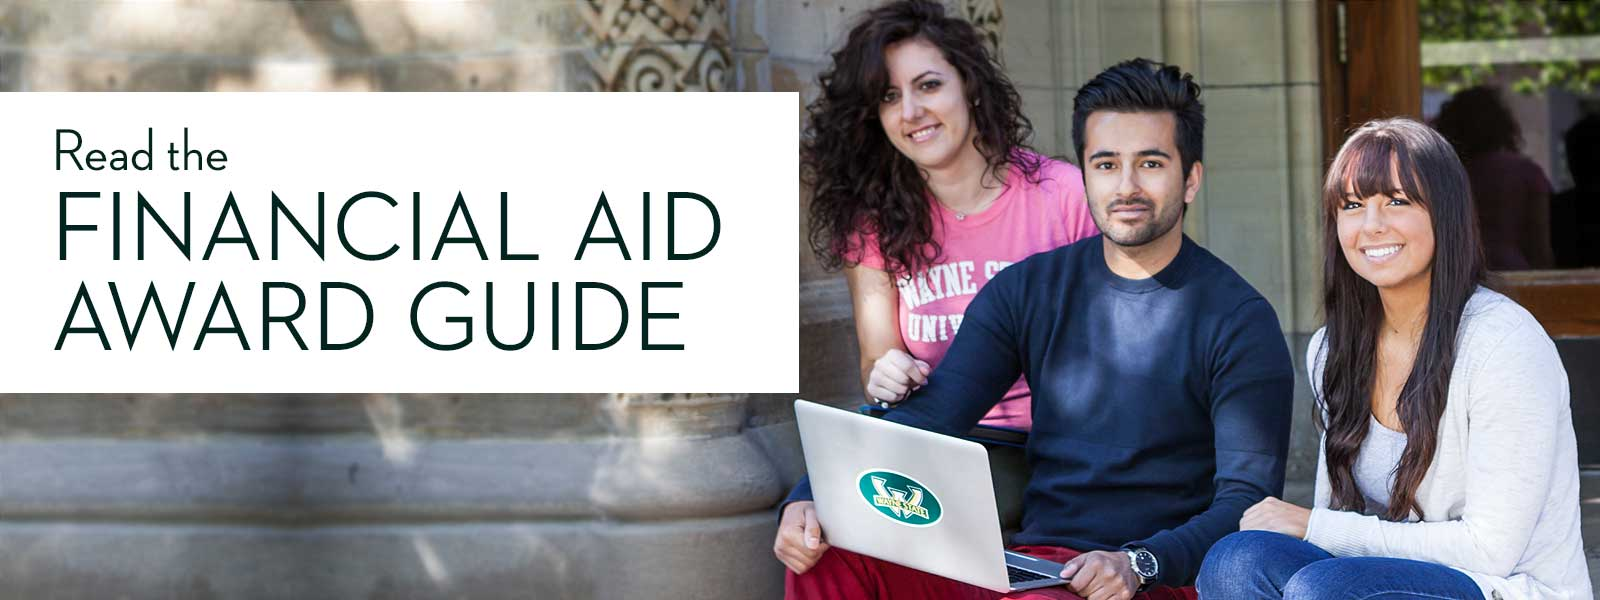 Read your financial aid award guide